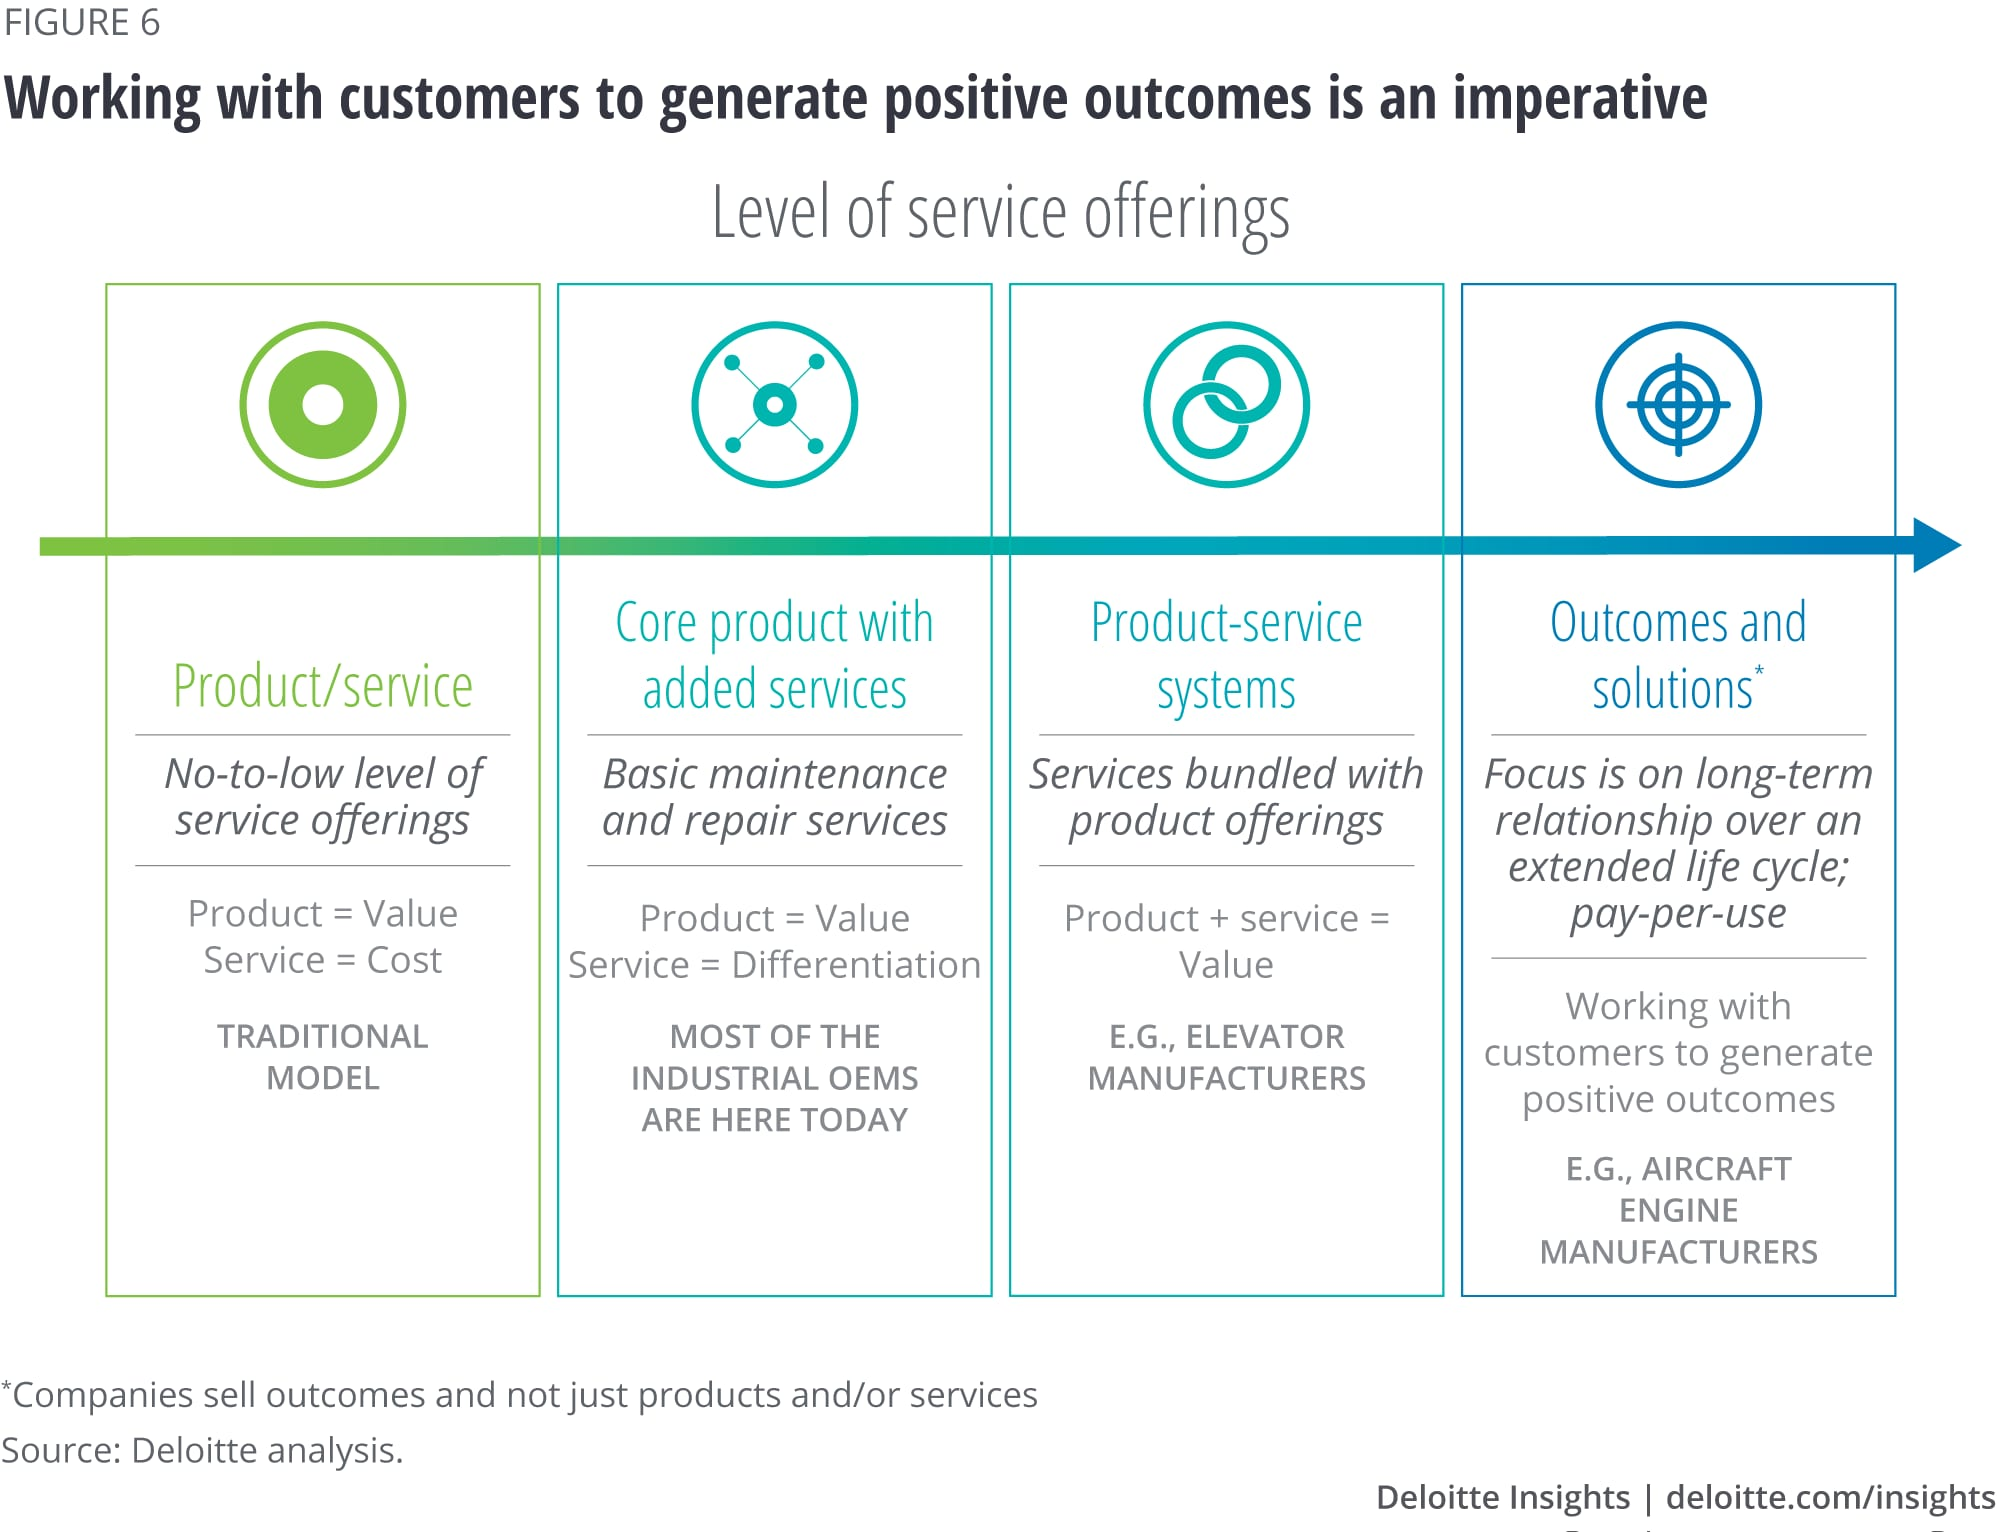 Working with customers to generate positive outcomes is an imperative